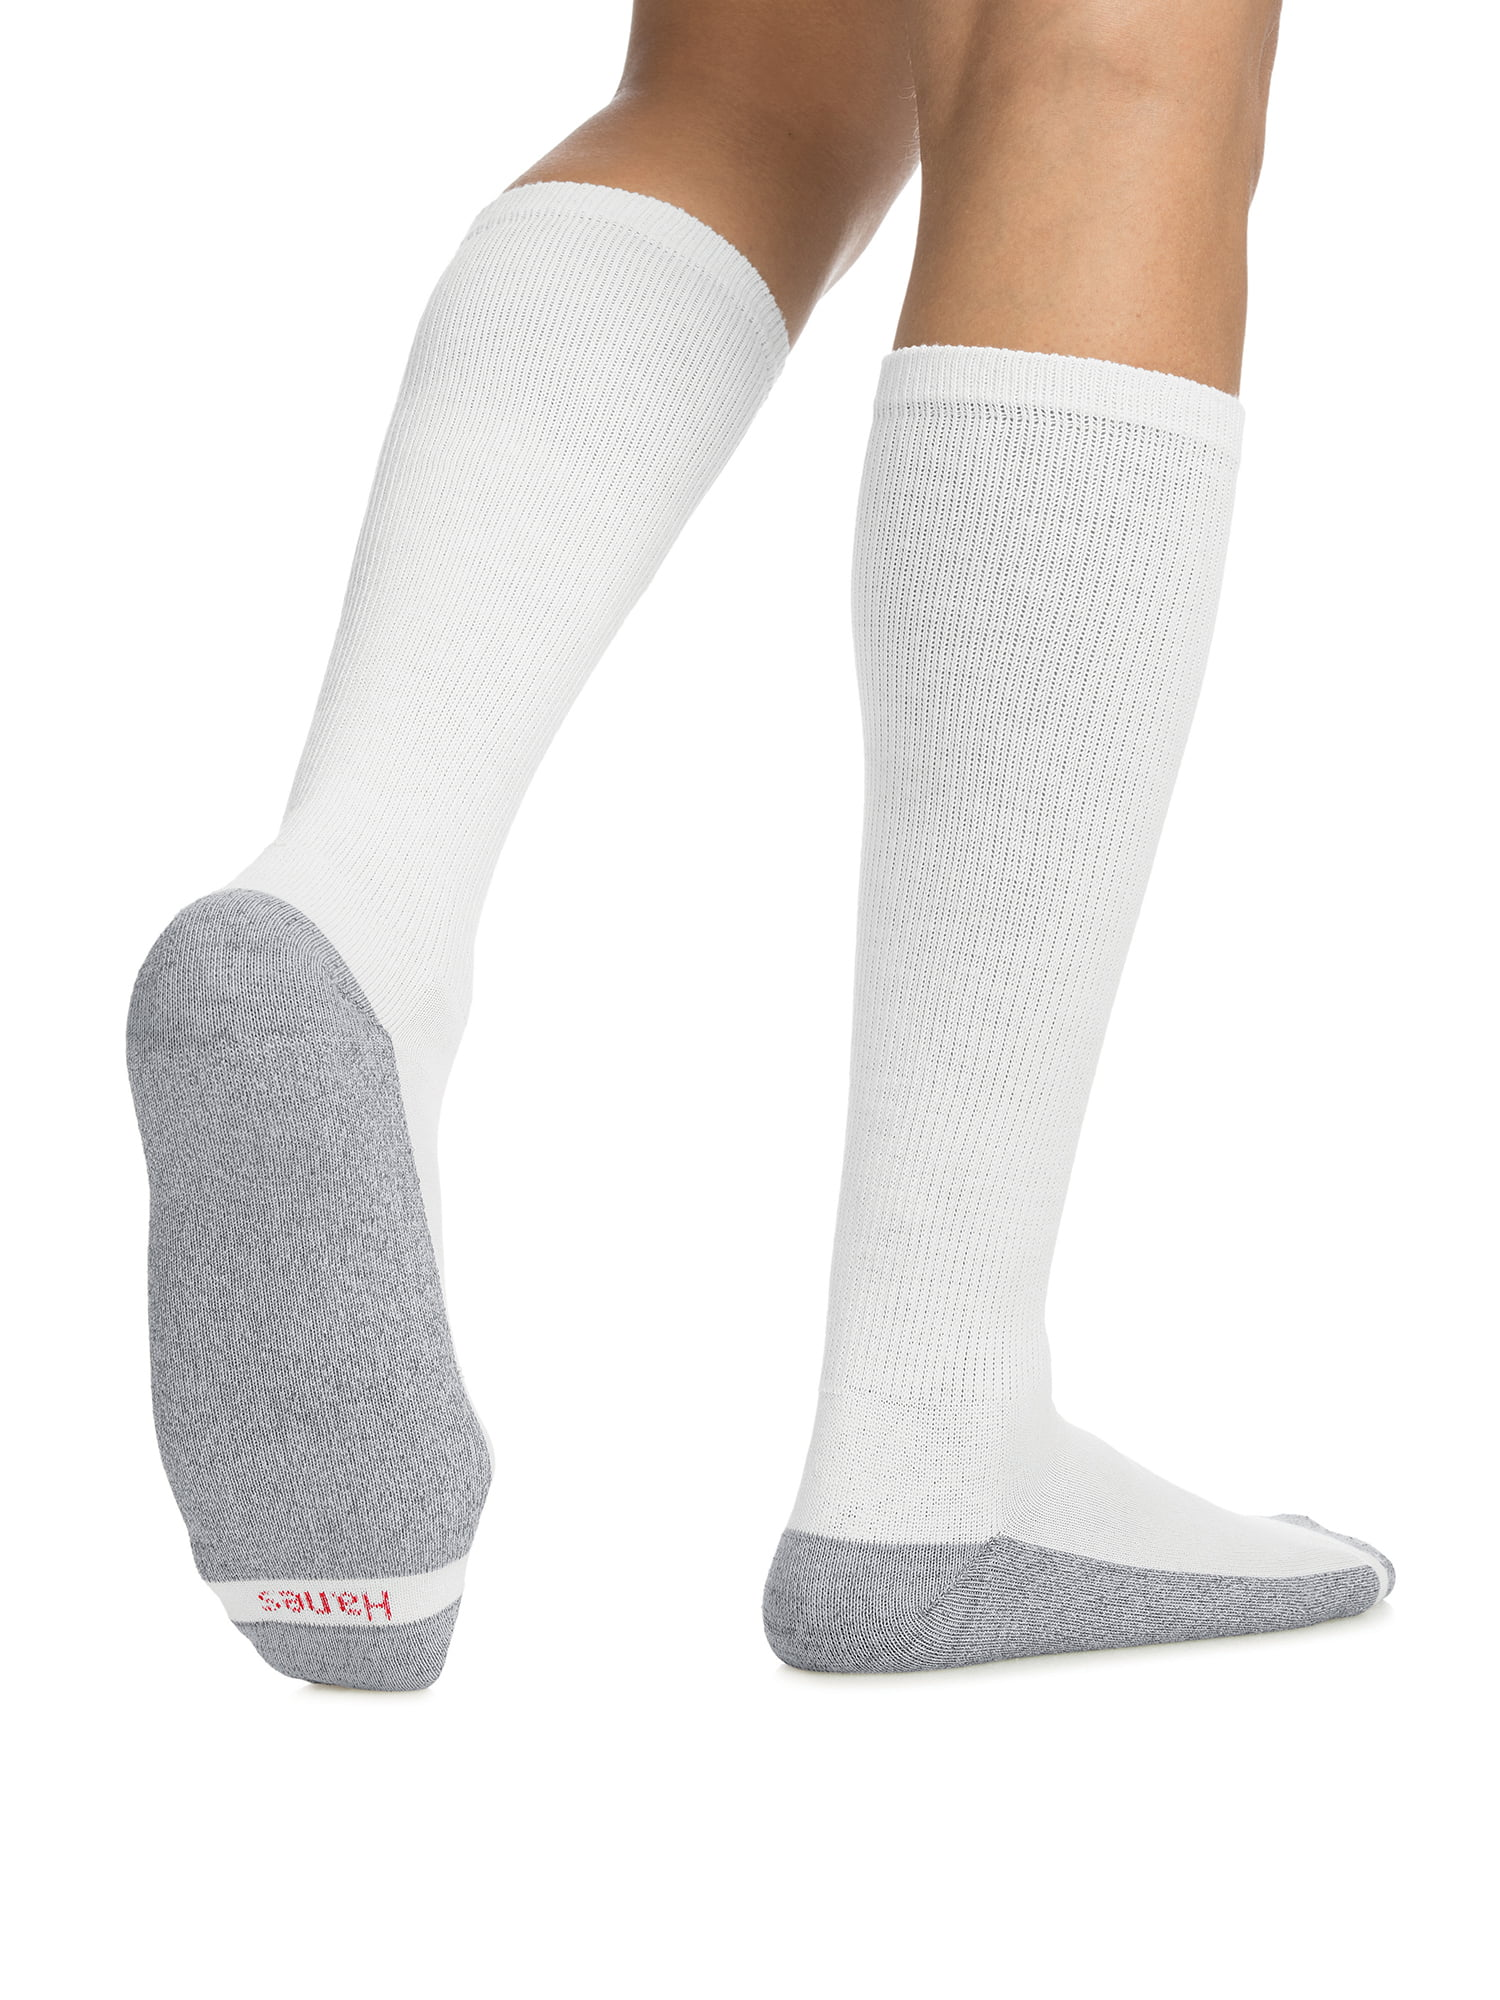 Hanes Men/'s Over the Calf Tube Socks 6-Pack